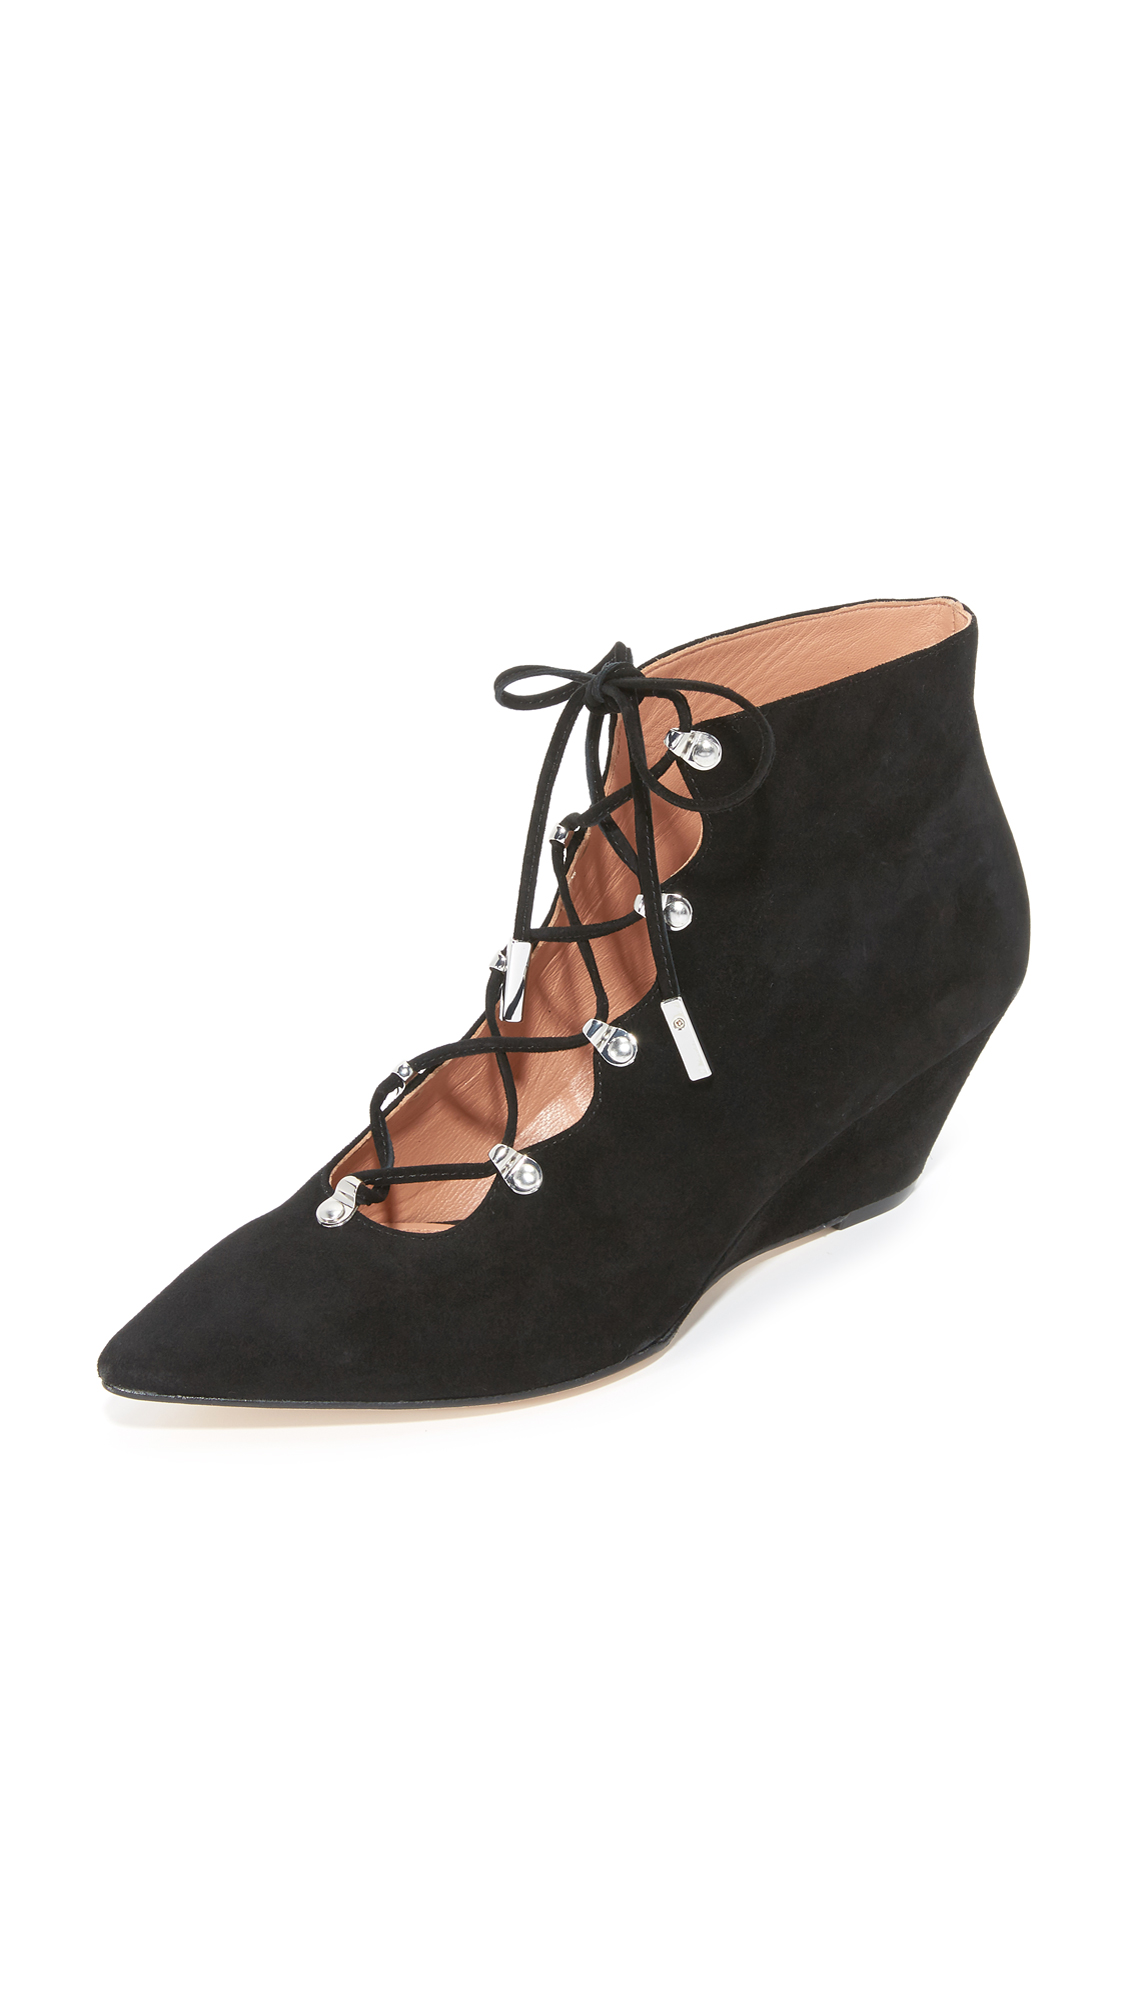 Sigerson Morrison Wing Lace Up Wedge Pumps - Black